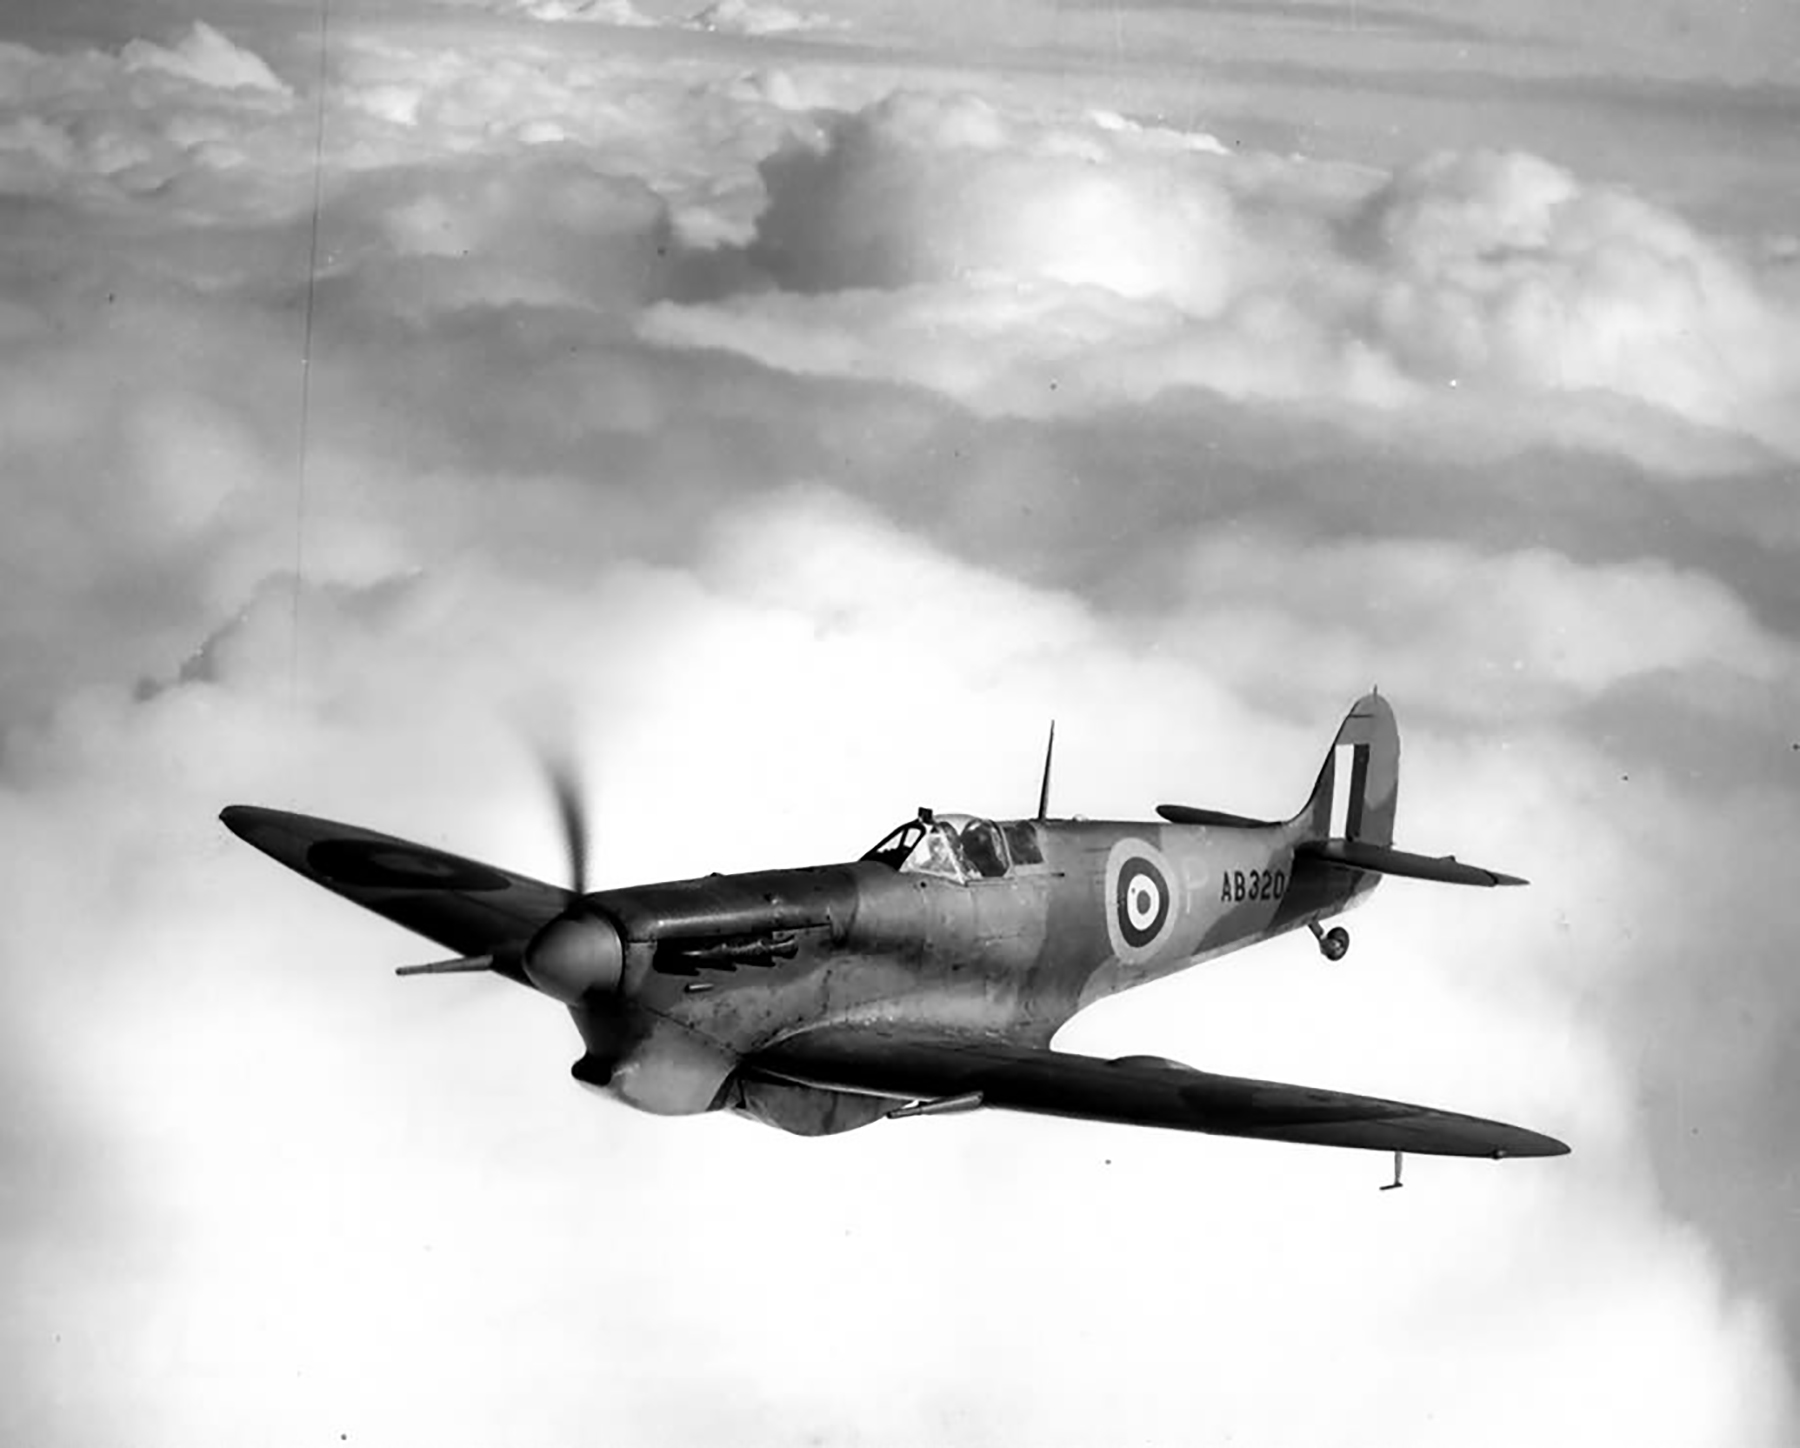 Spitfire 5b Trop Proyotype AB320 during air trials 1942 01